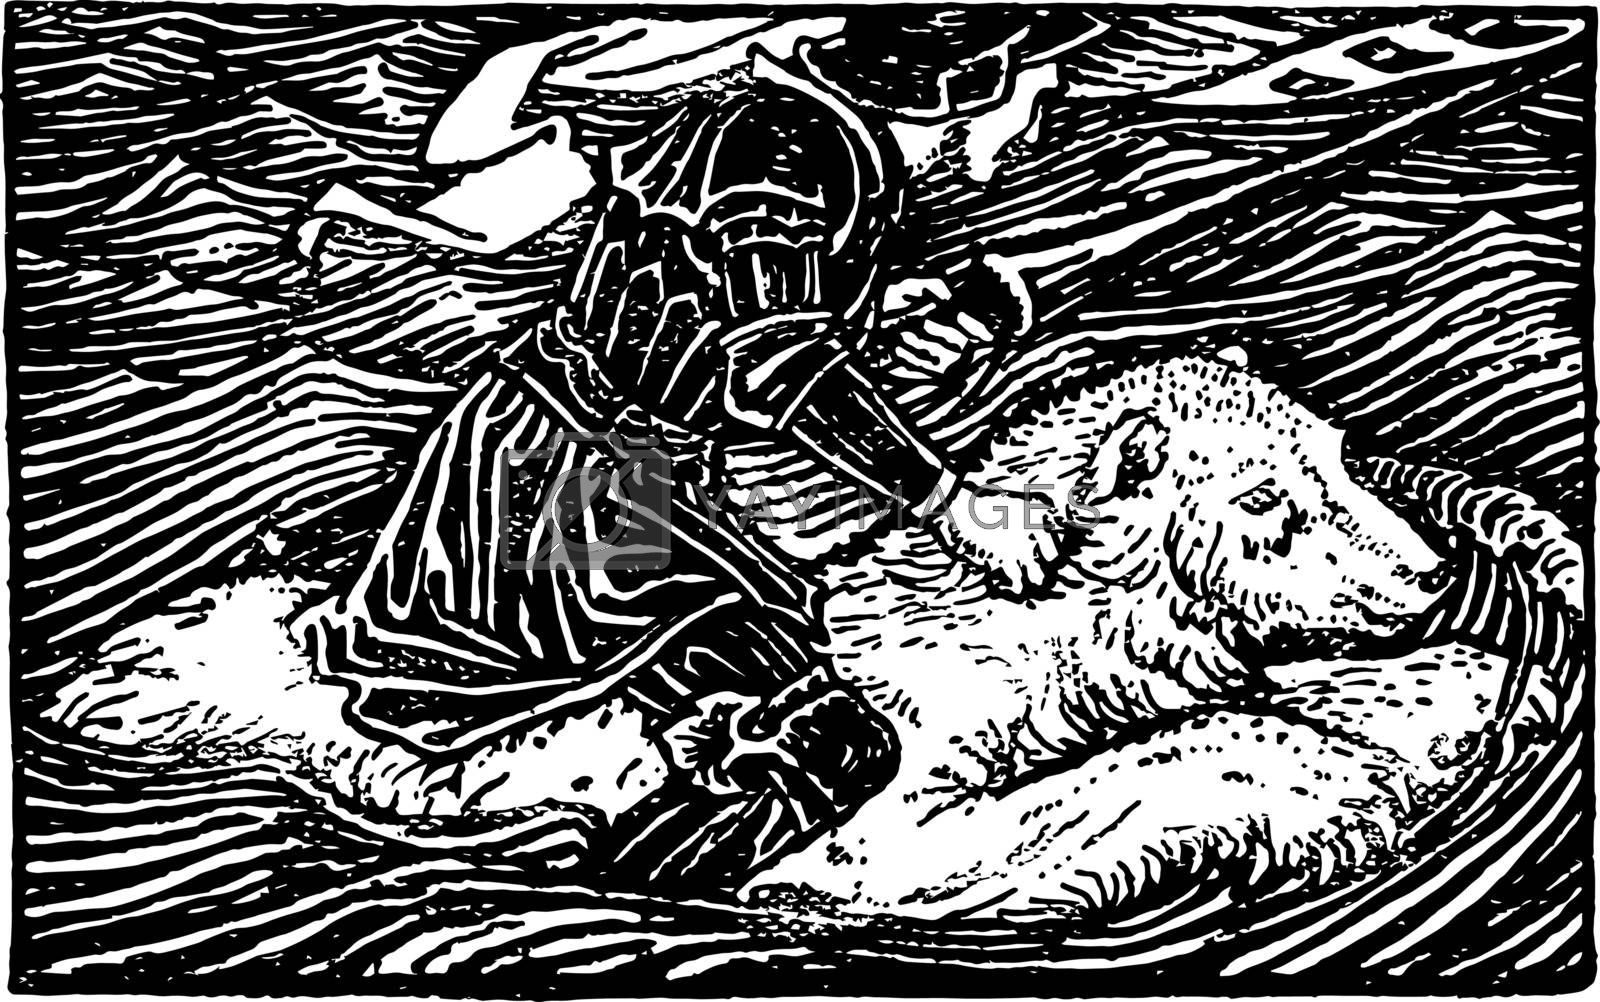 Huon of Bordeaux is a character in a 13th century its epic with romance element and sold follower of the family named Gerasmes vintage line drawing or engraving illustration.